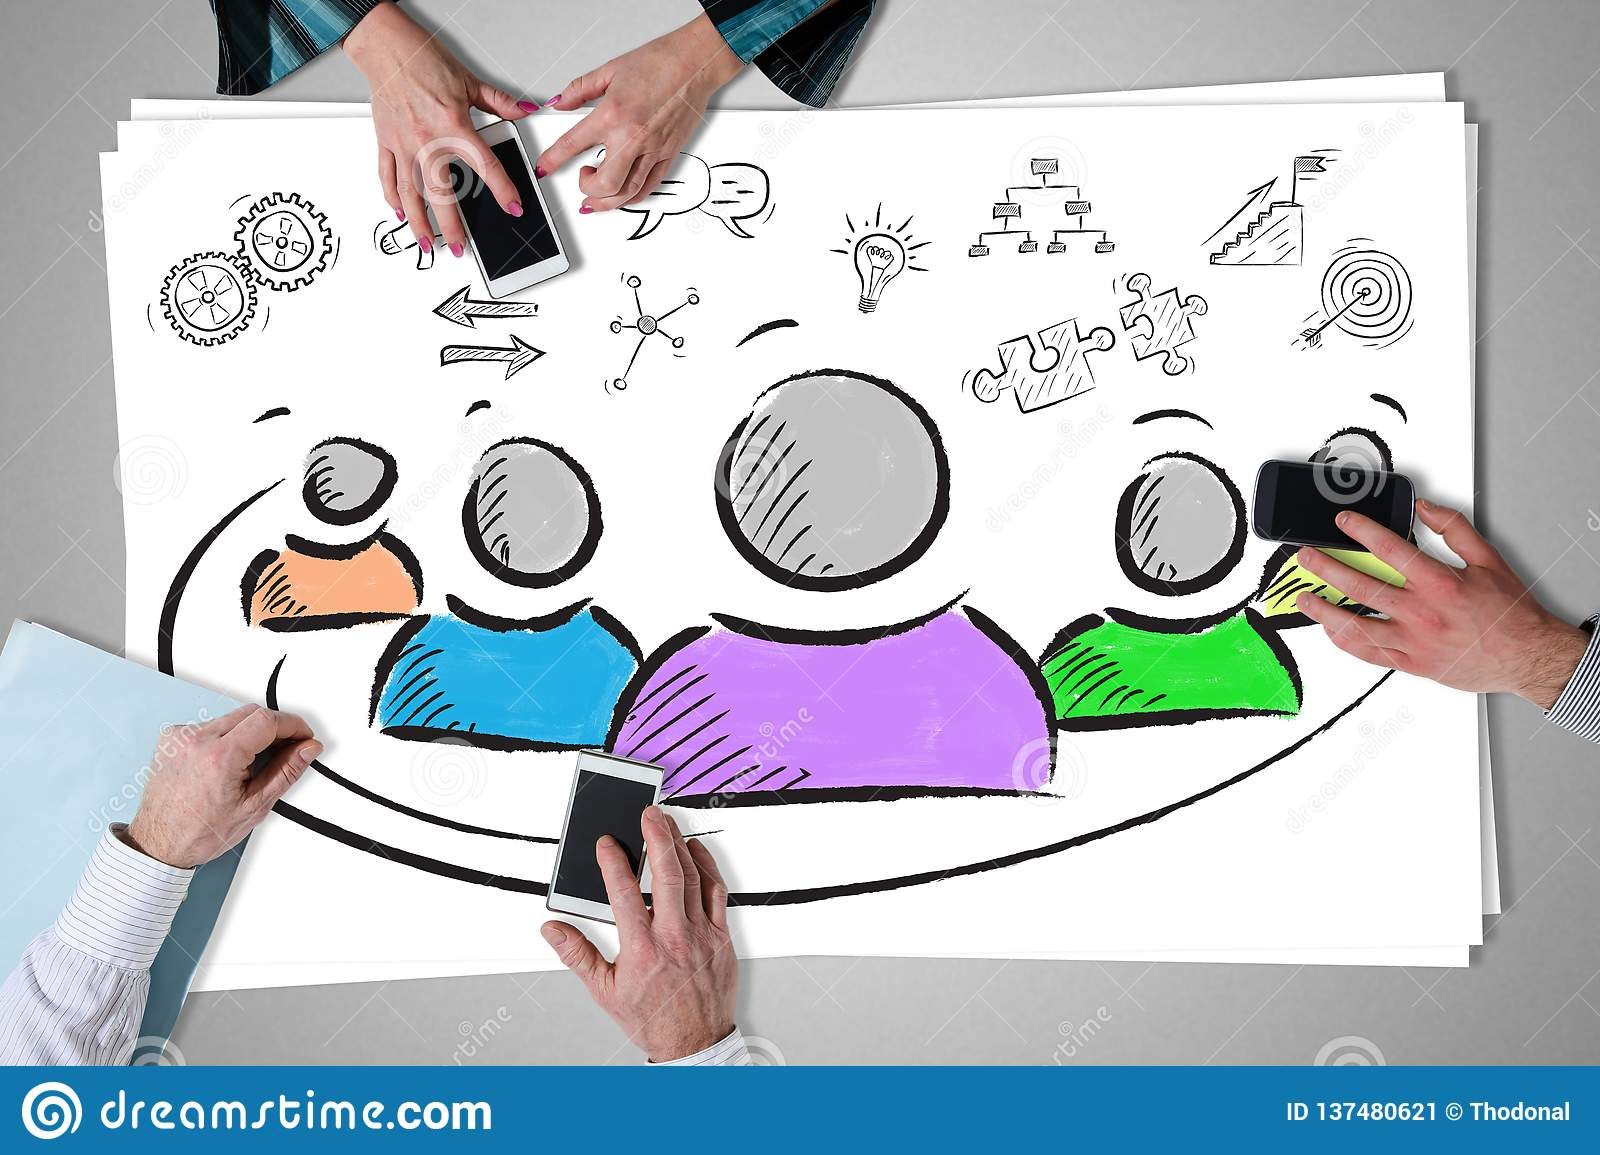 Entrepreneurship concept placed on a desk. With hands using smartphones stock image